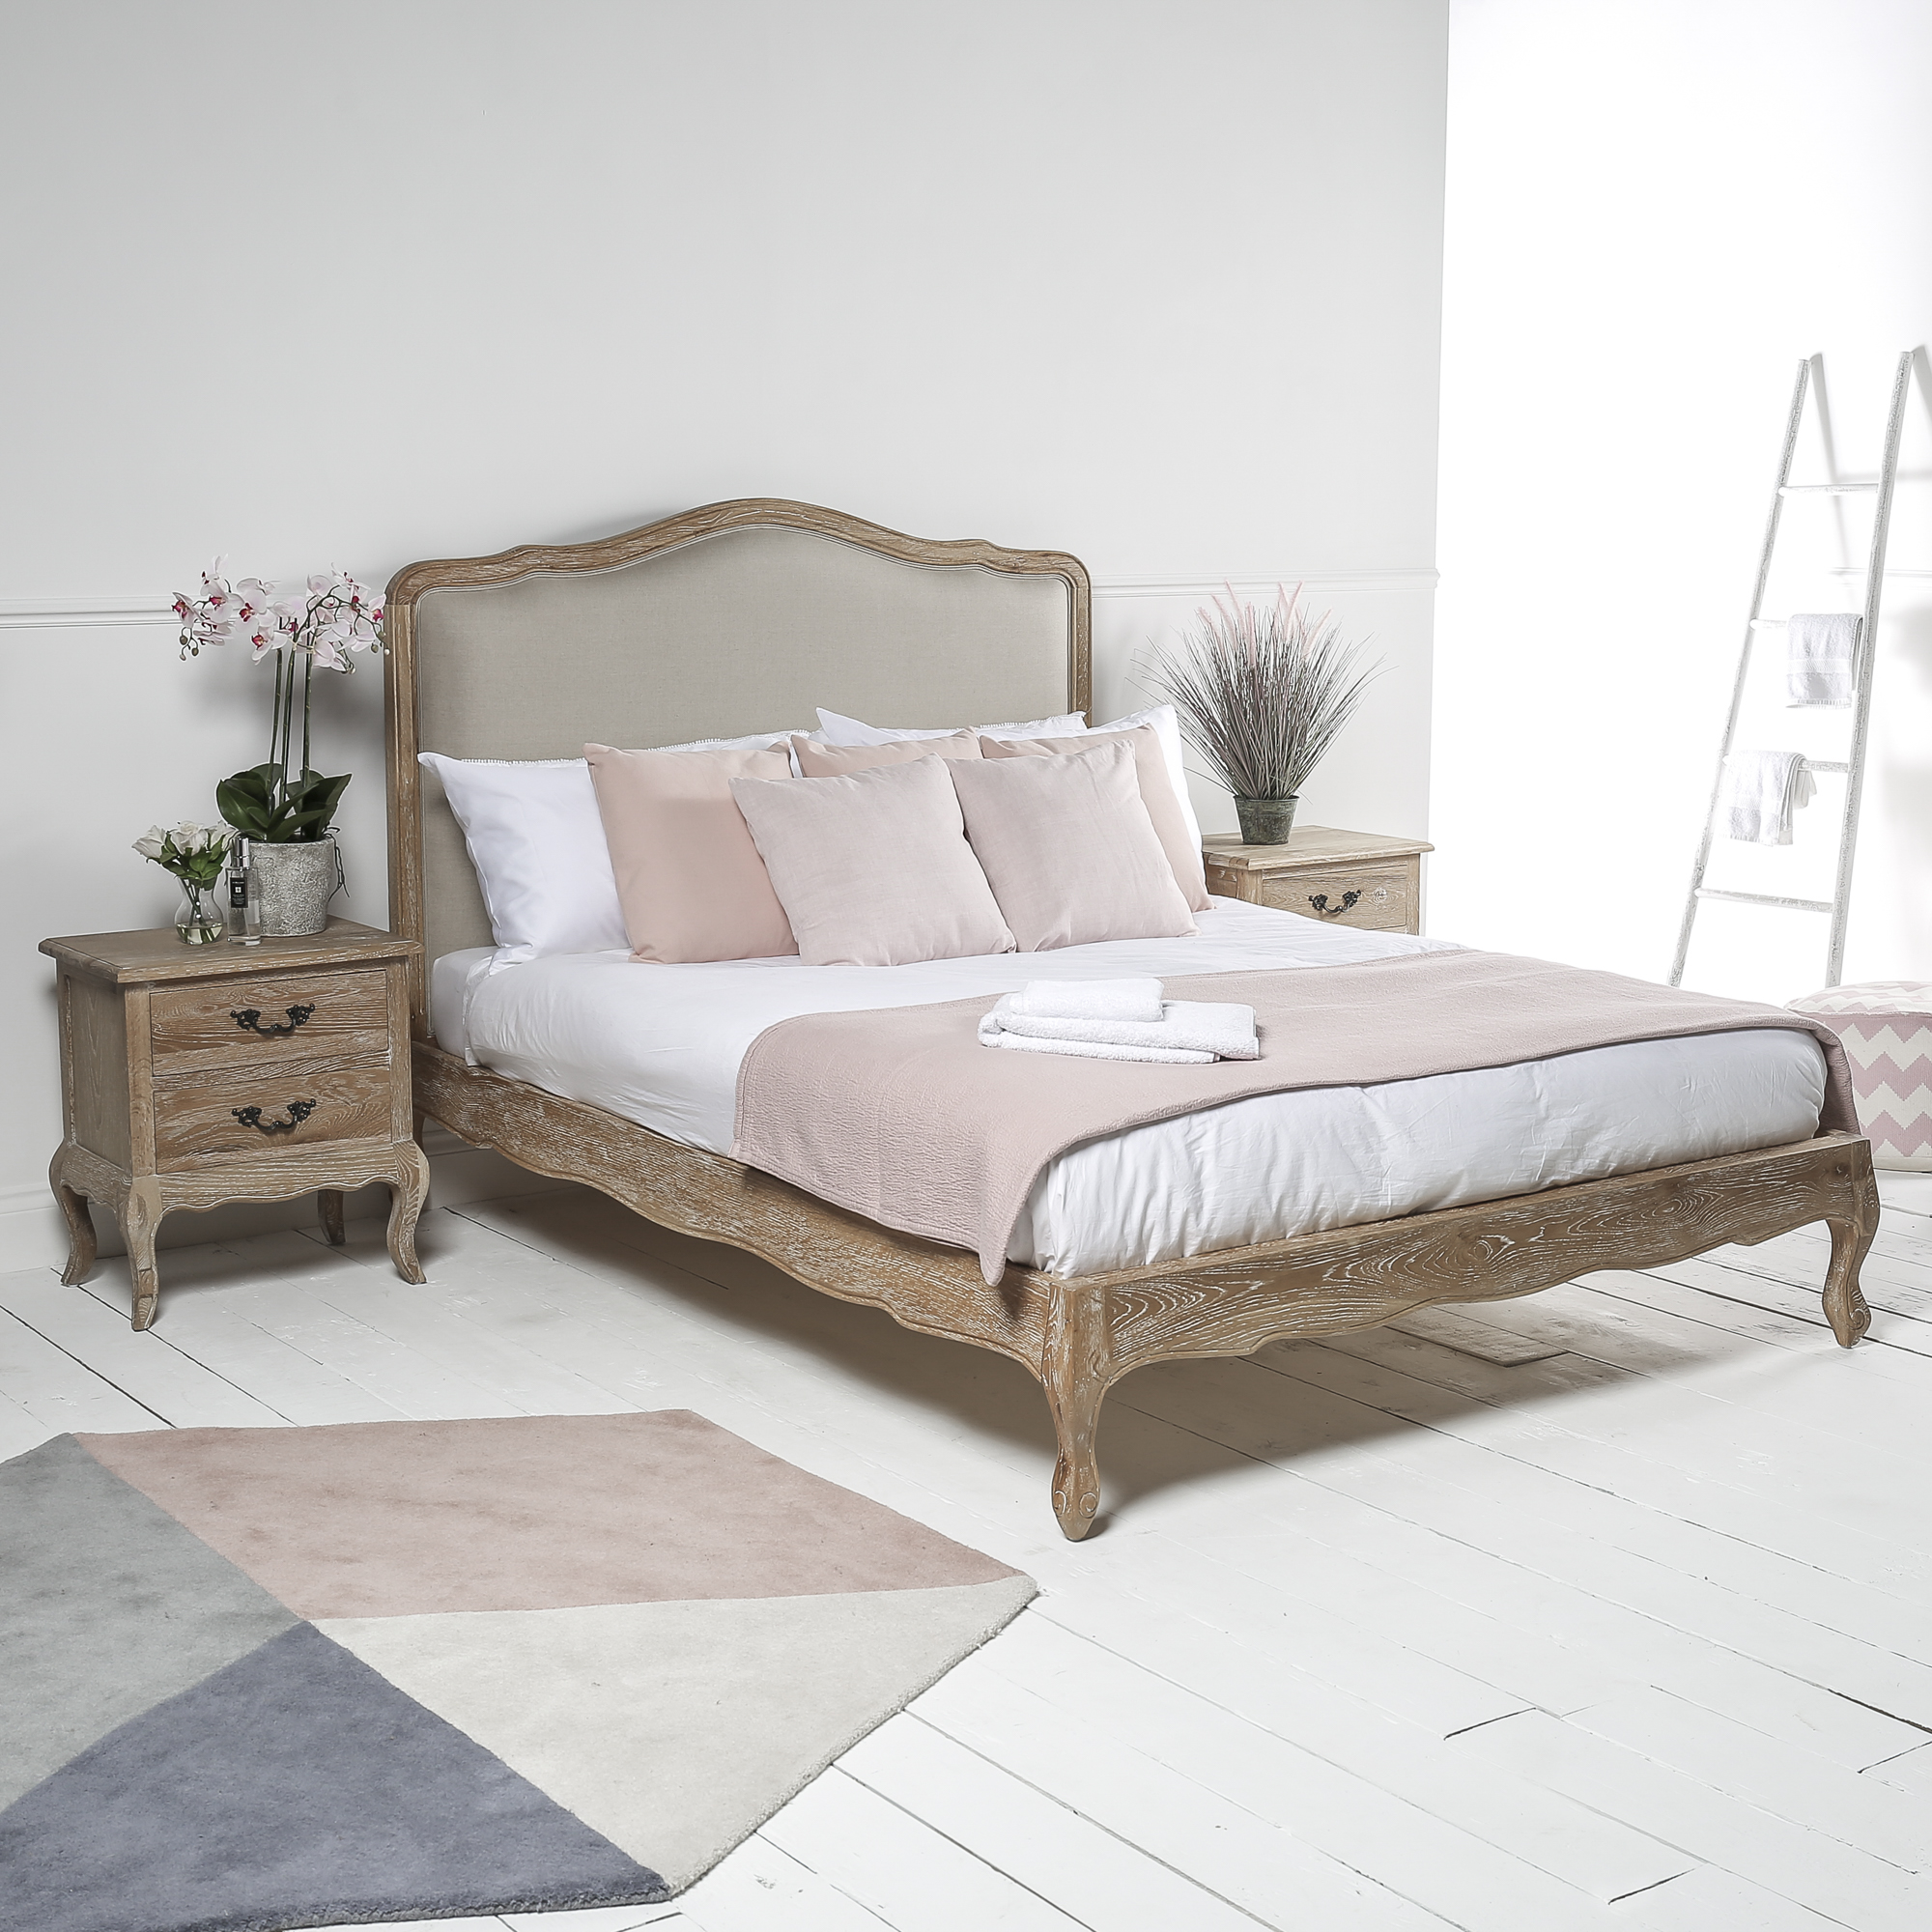 French Weathered Limed Oak Upholstered Low Foot Board Bed – Super King Size